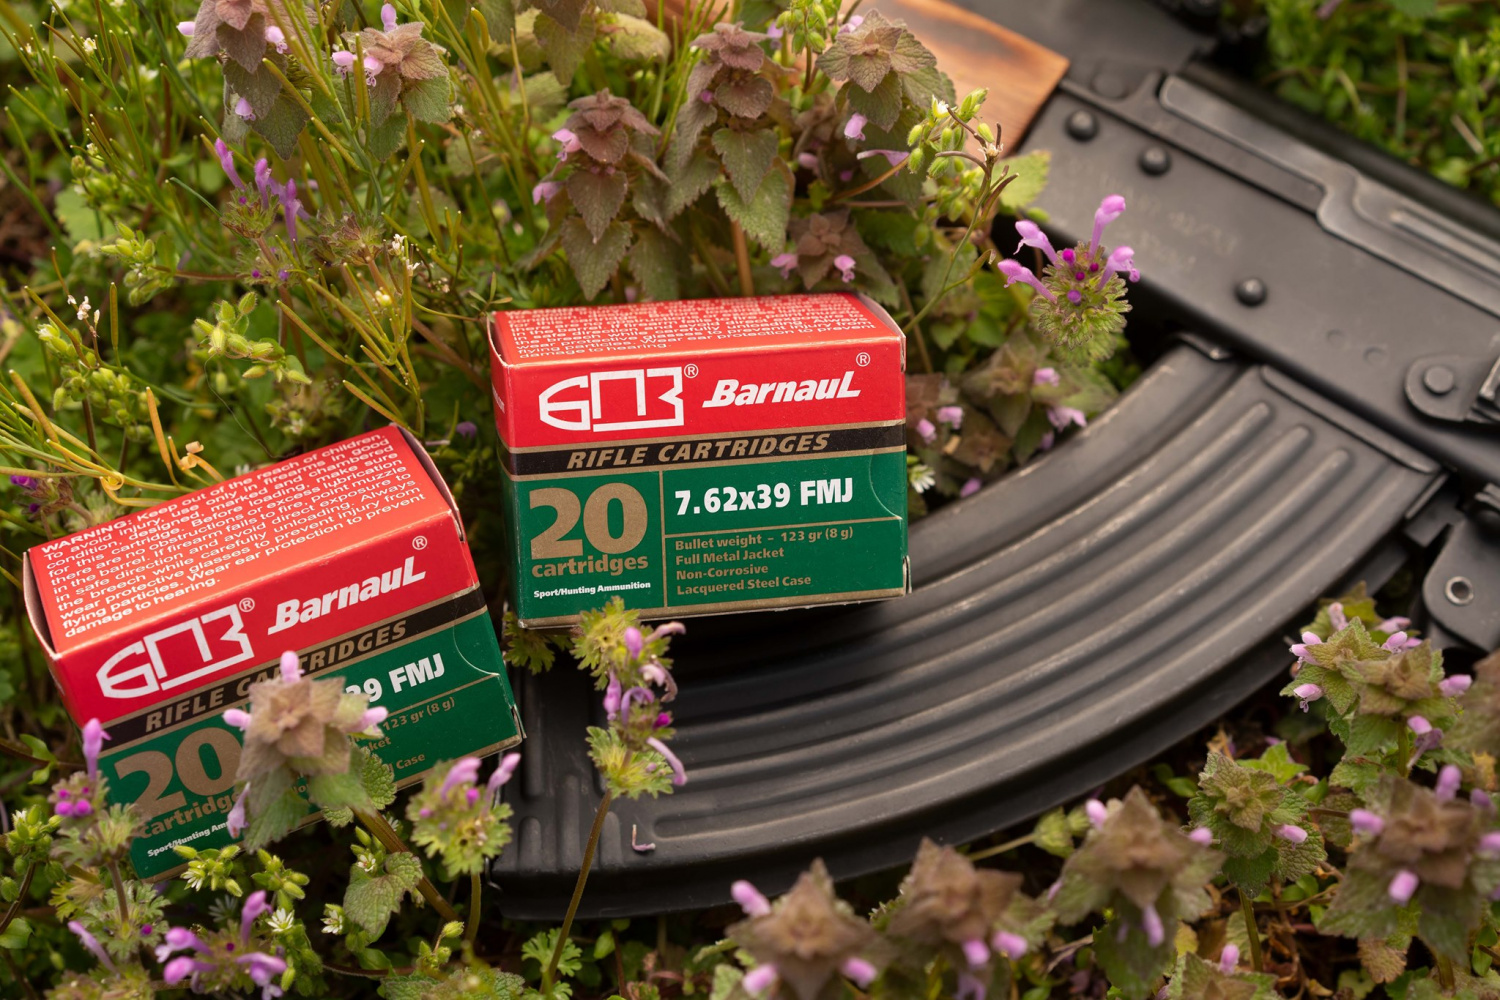 As you'd expect from a Russian-based steel-case ammo company, Barnaul does produce some good old 7.62x39.